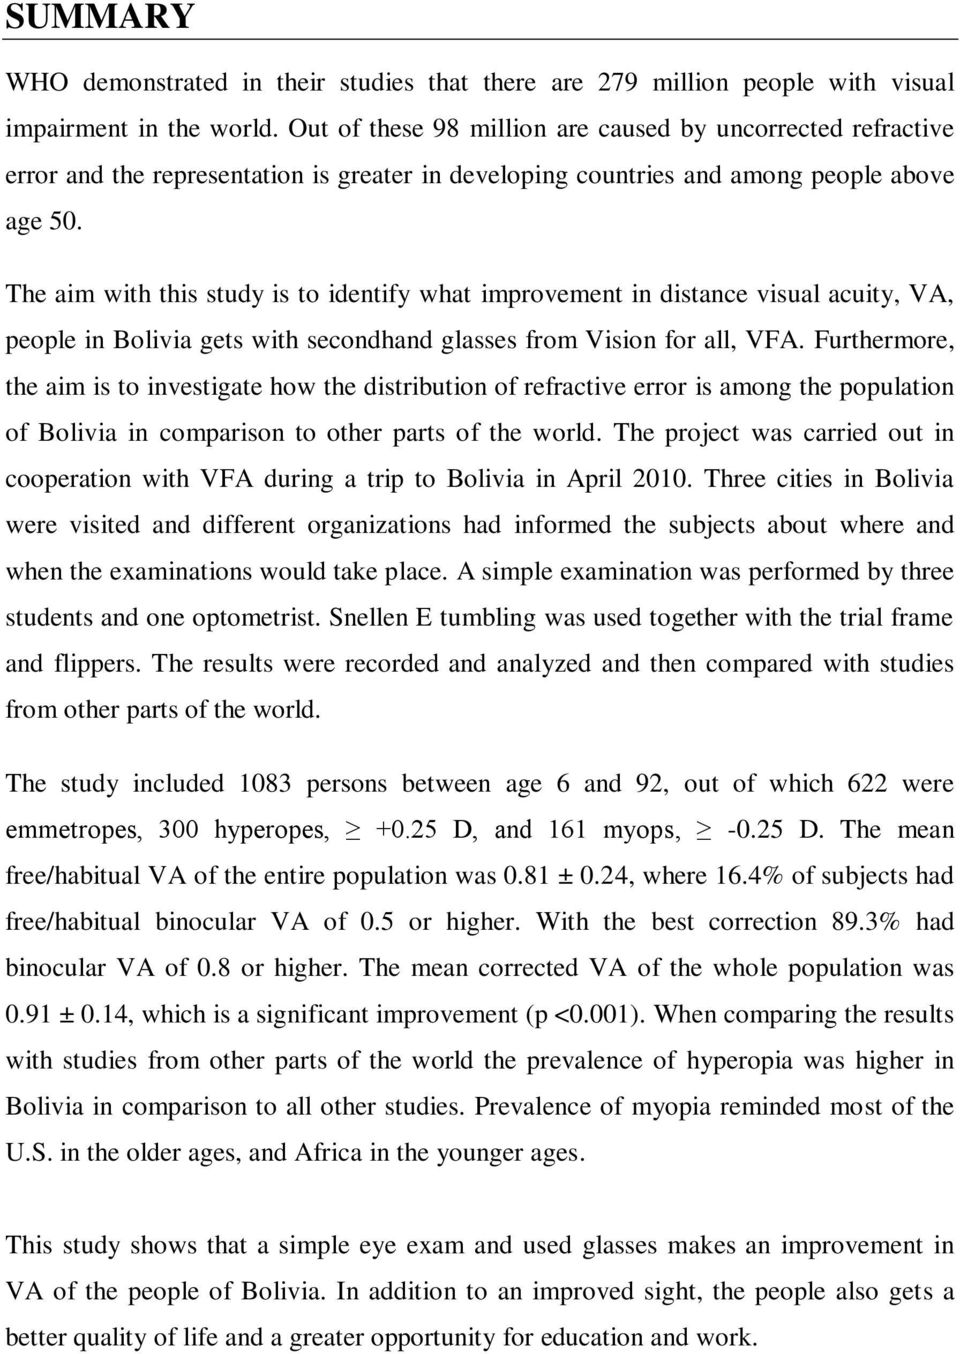 The aim with this study is to identify what improvement in distance visual acuity, VA, people in Bolivia gets with secondhand glasses from Vision for all, VFA.